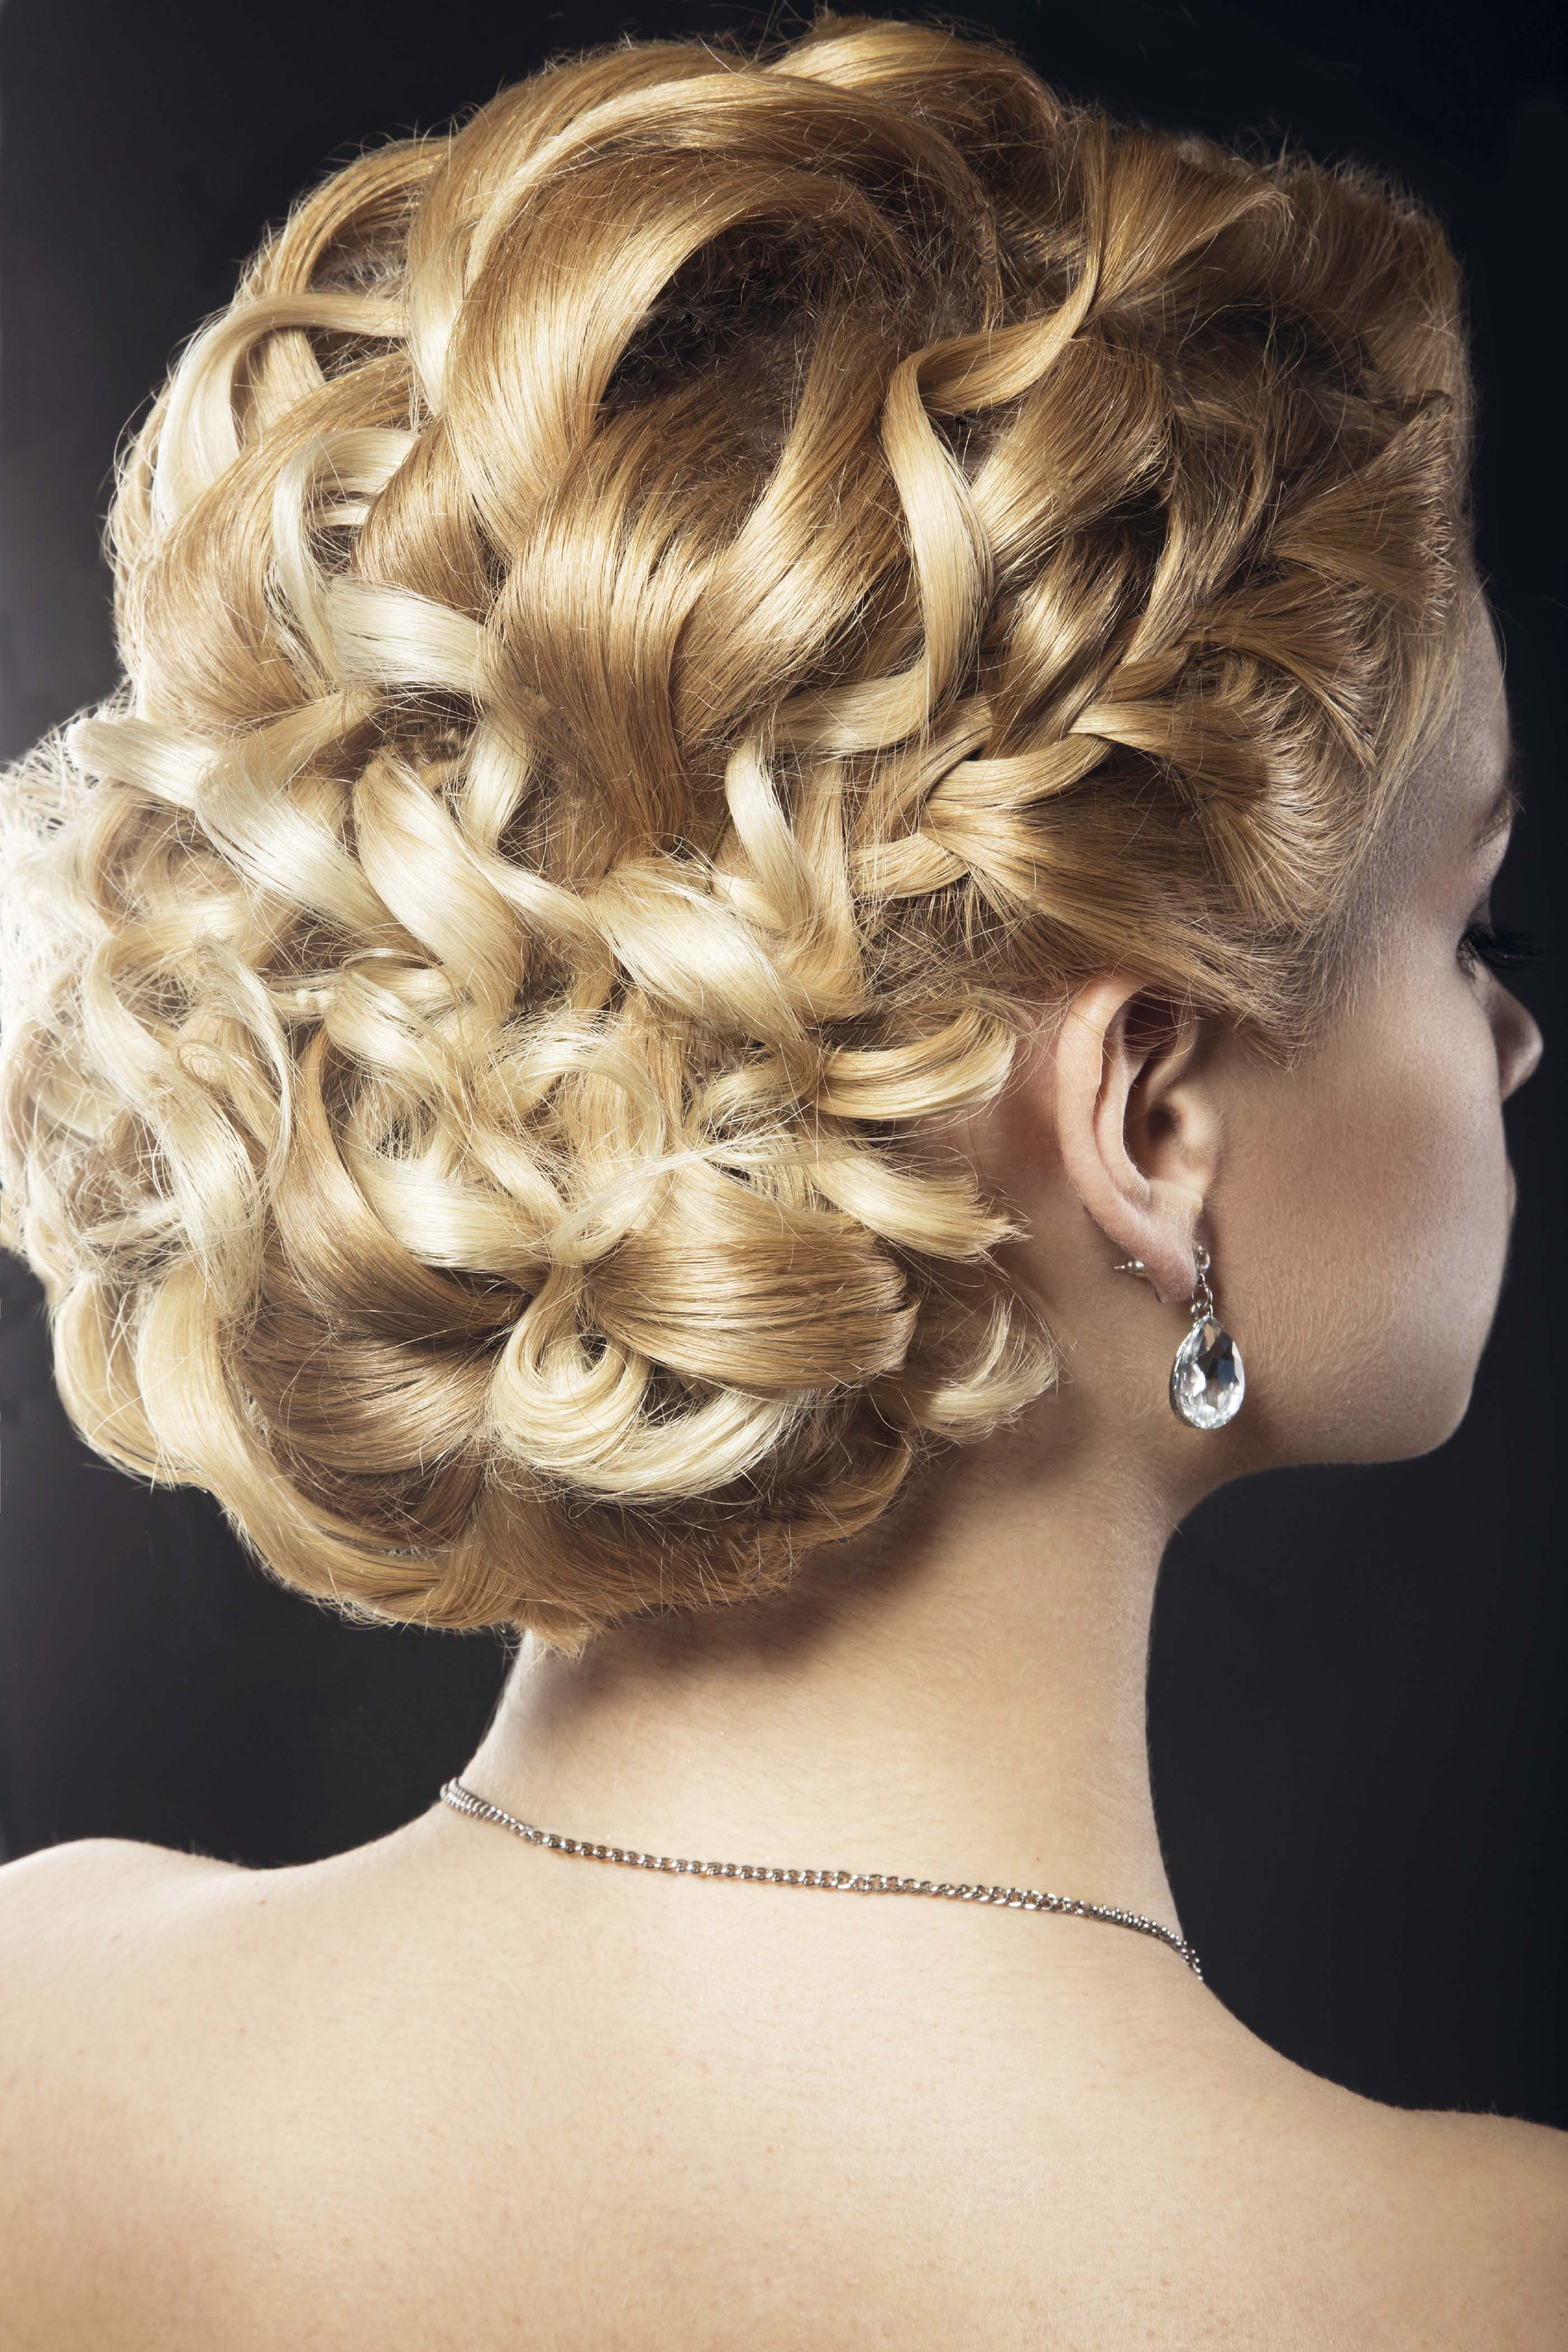 9 Spring Wedding Updos for Curly Hair